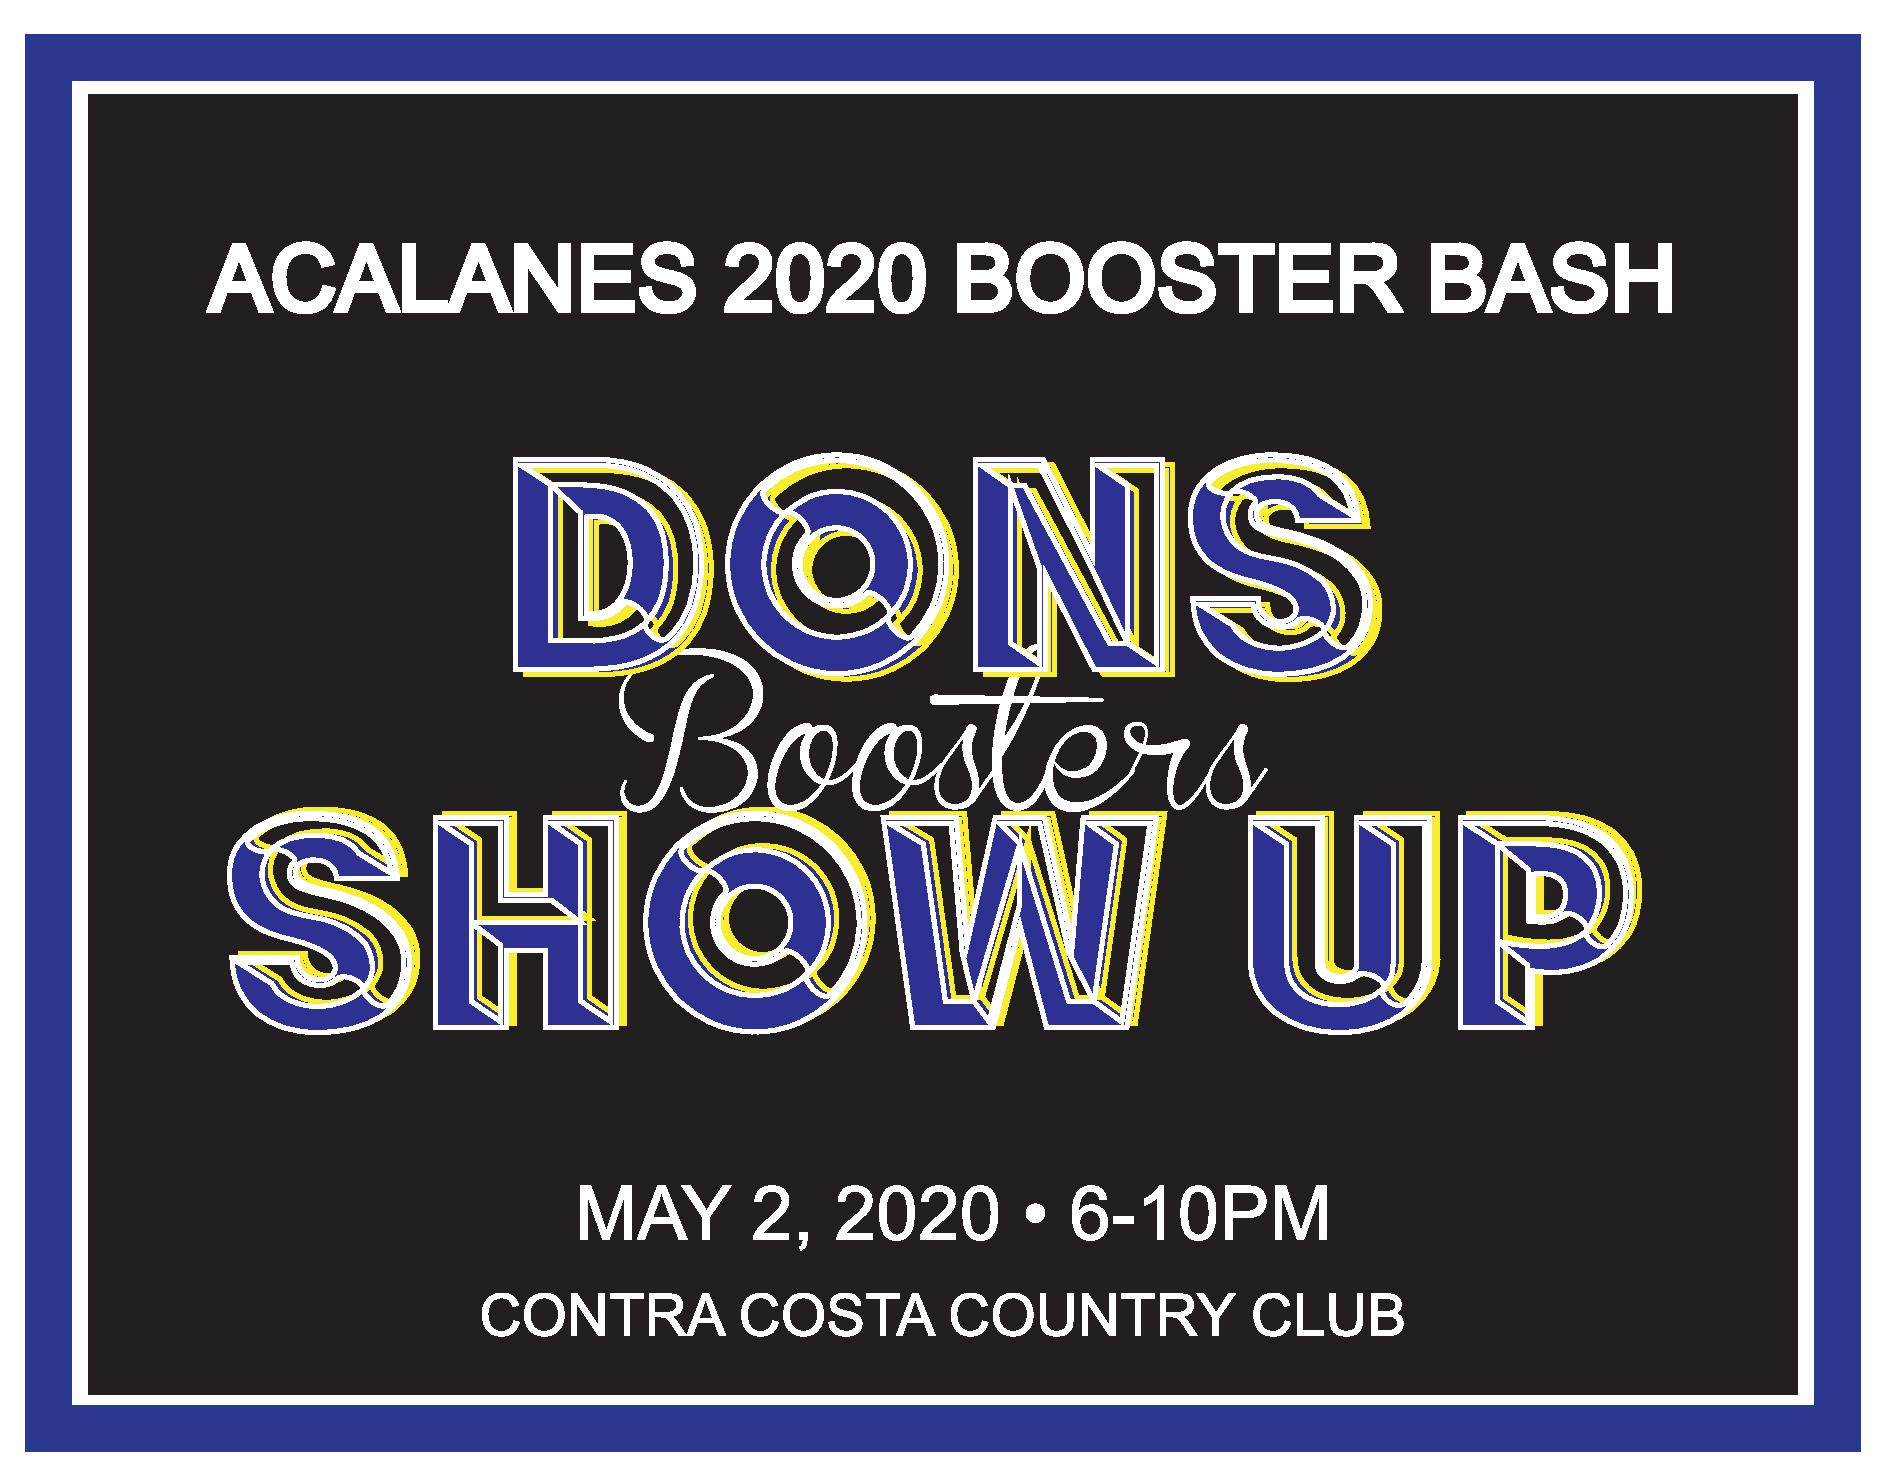 Save the Date – Booster Bash May 2, 2020 at Contra Costa CC!